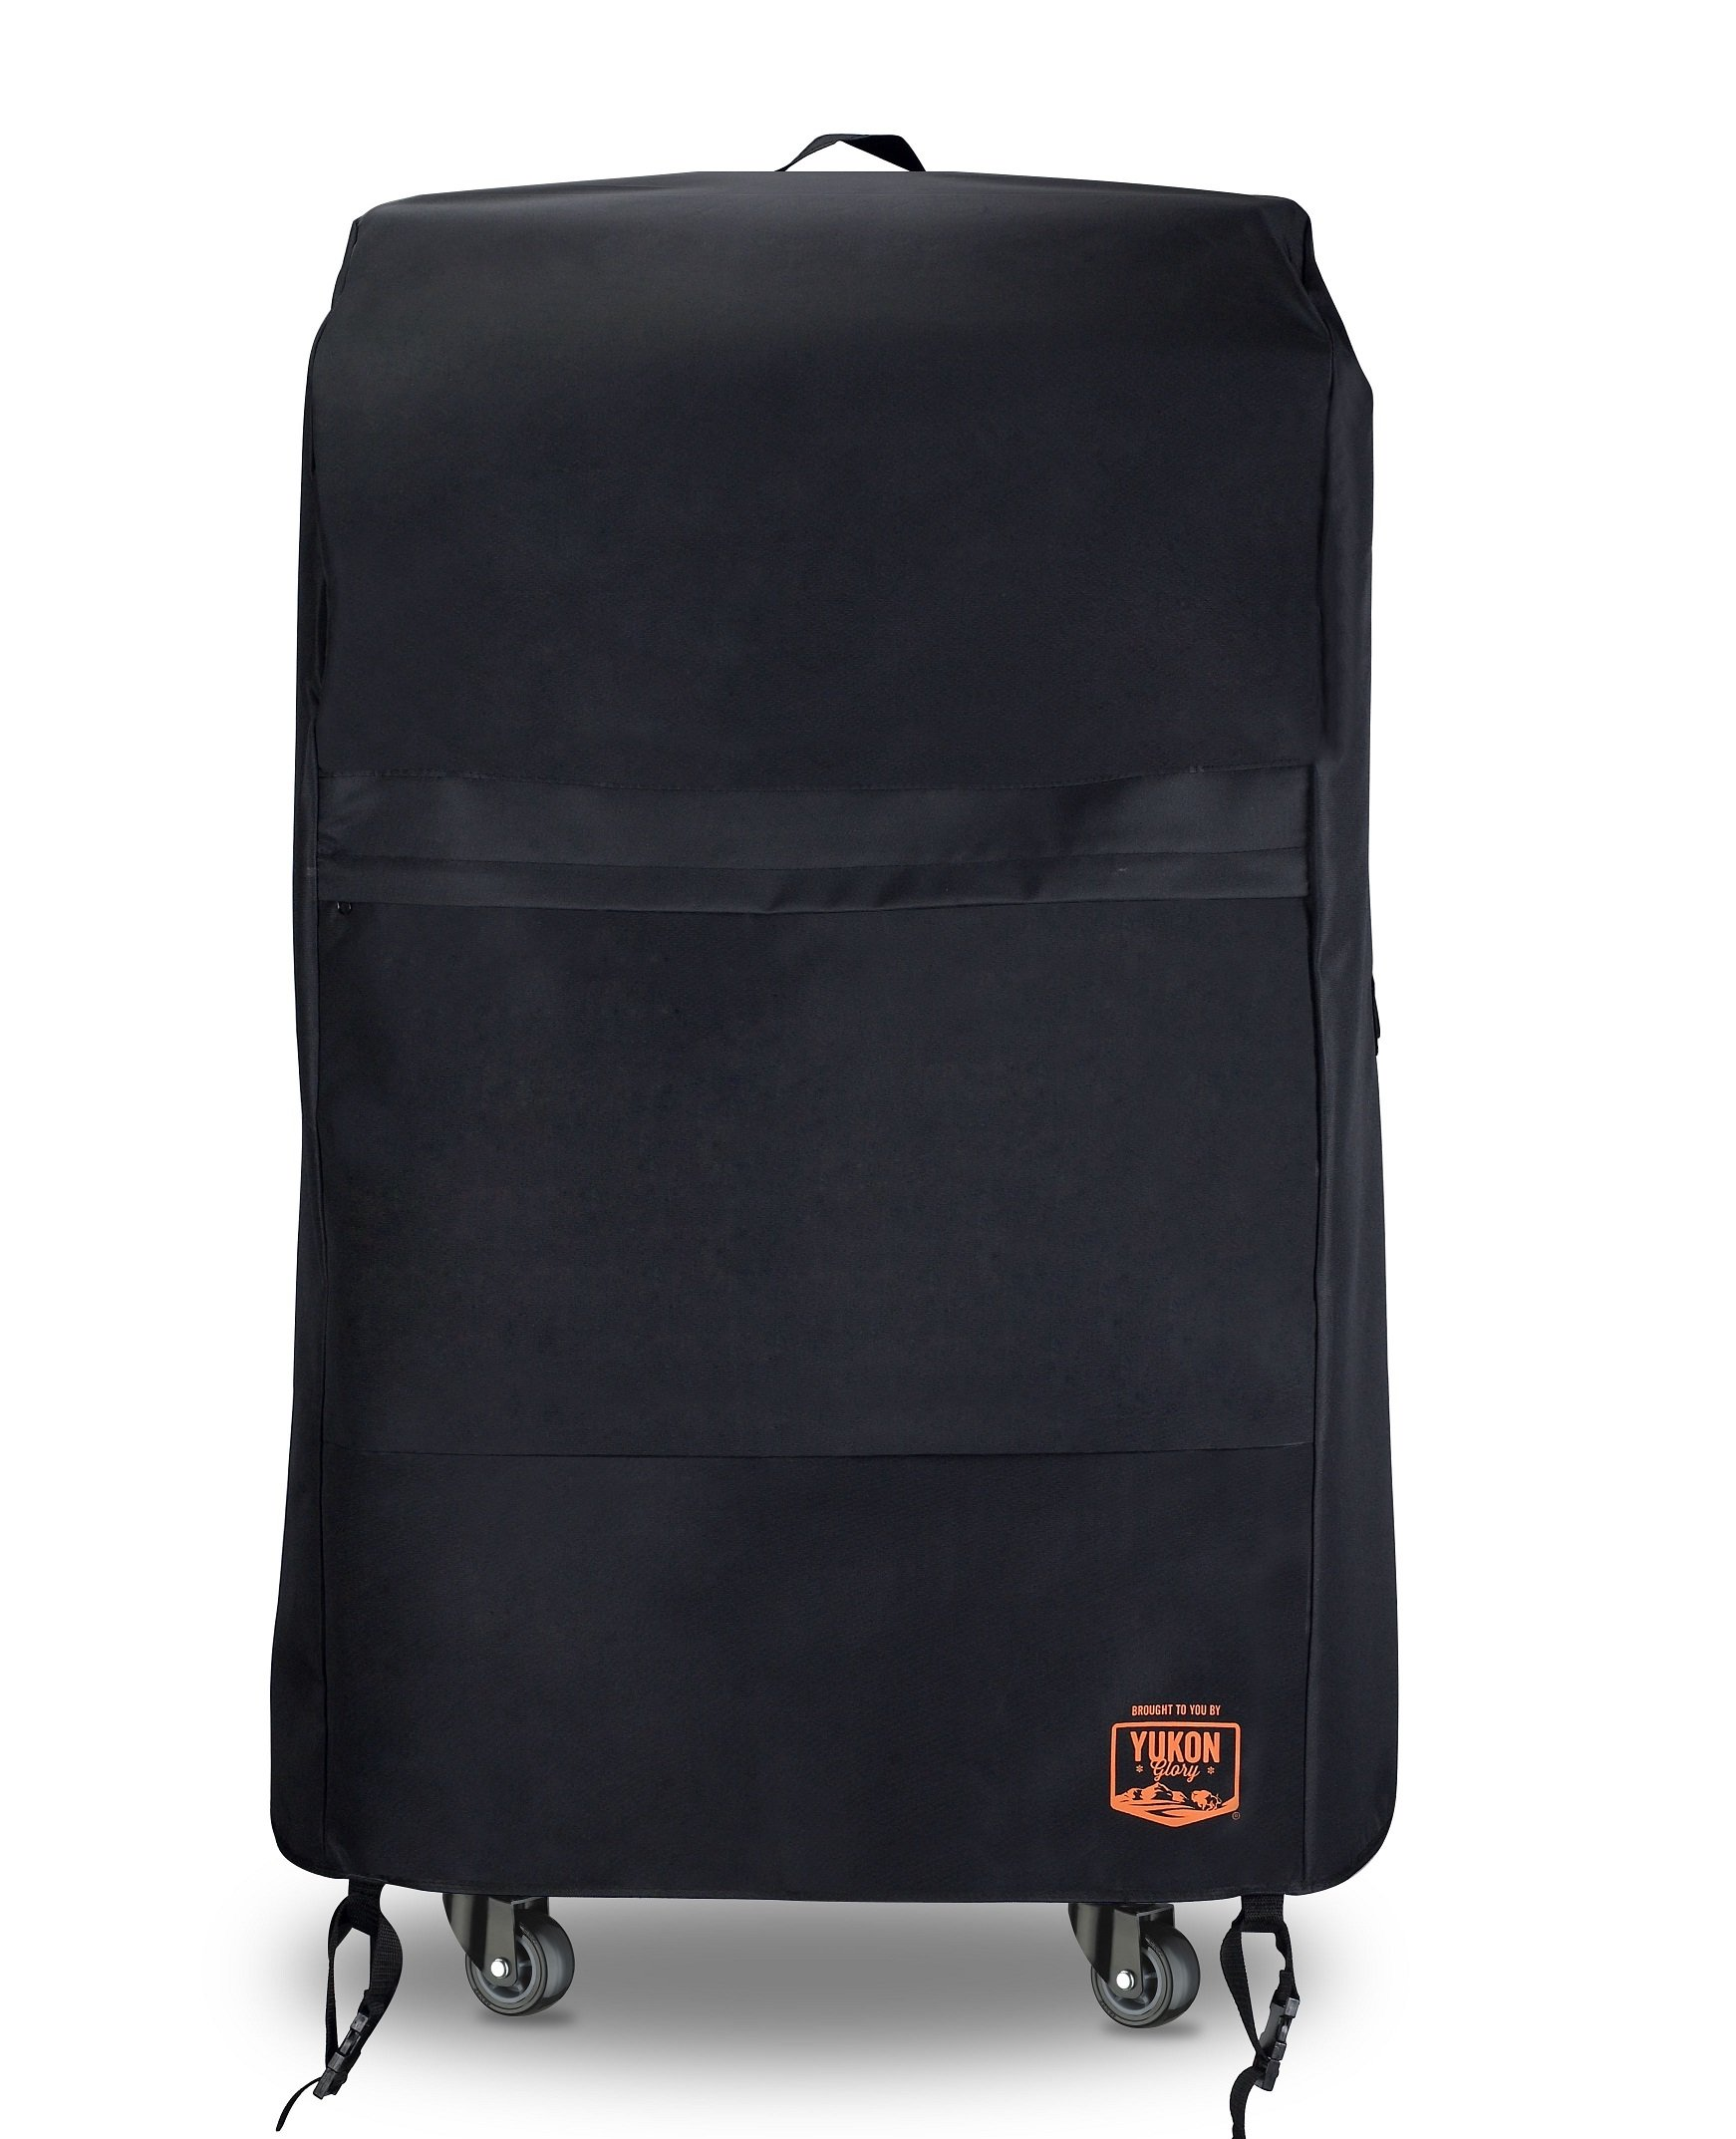 Weber 7105 Grill Cover With Black Storage Bag Spirit 210 Series Gas Grills